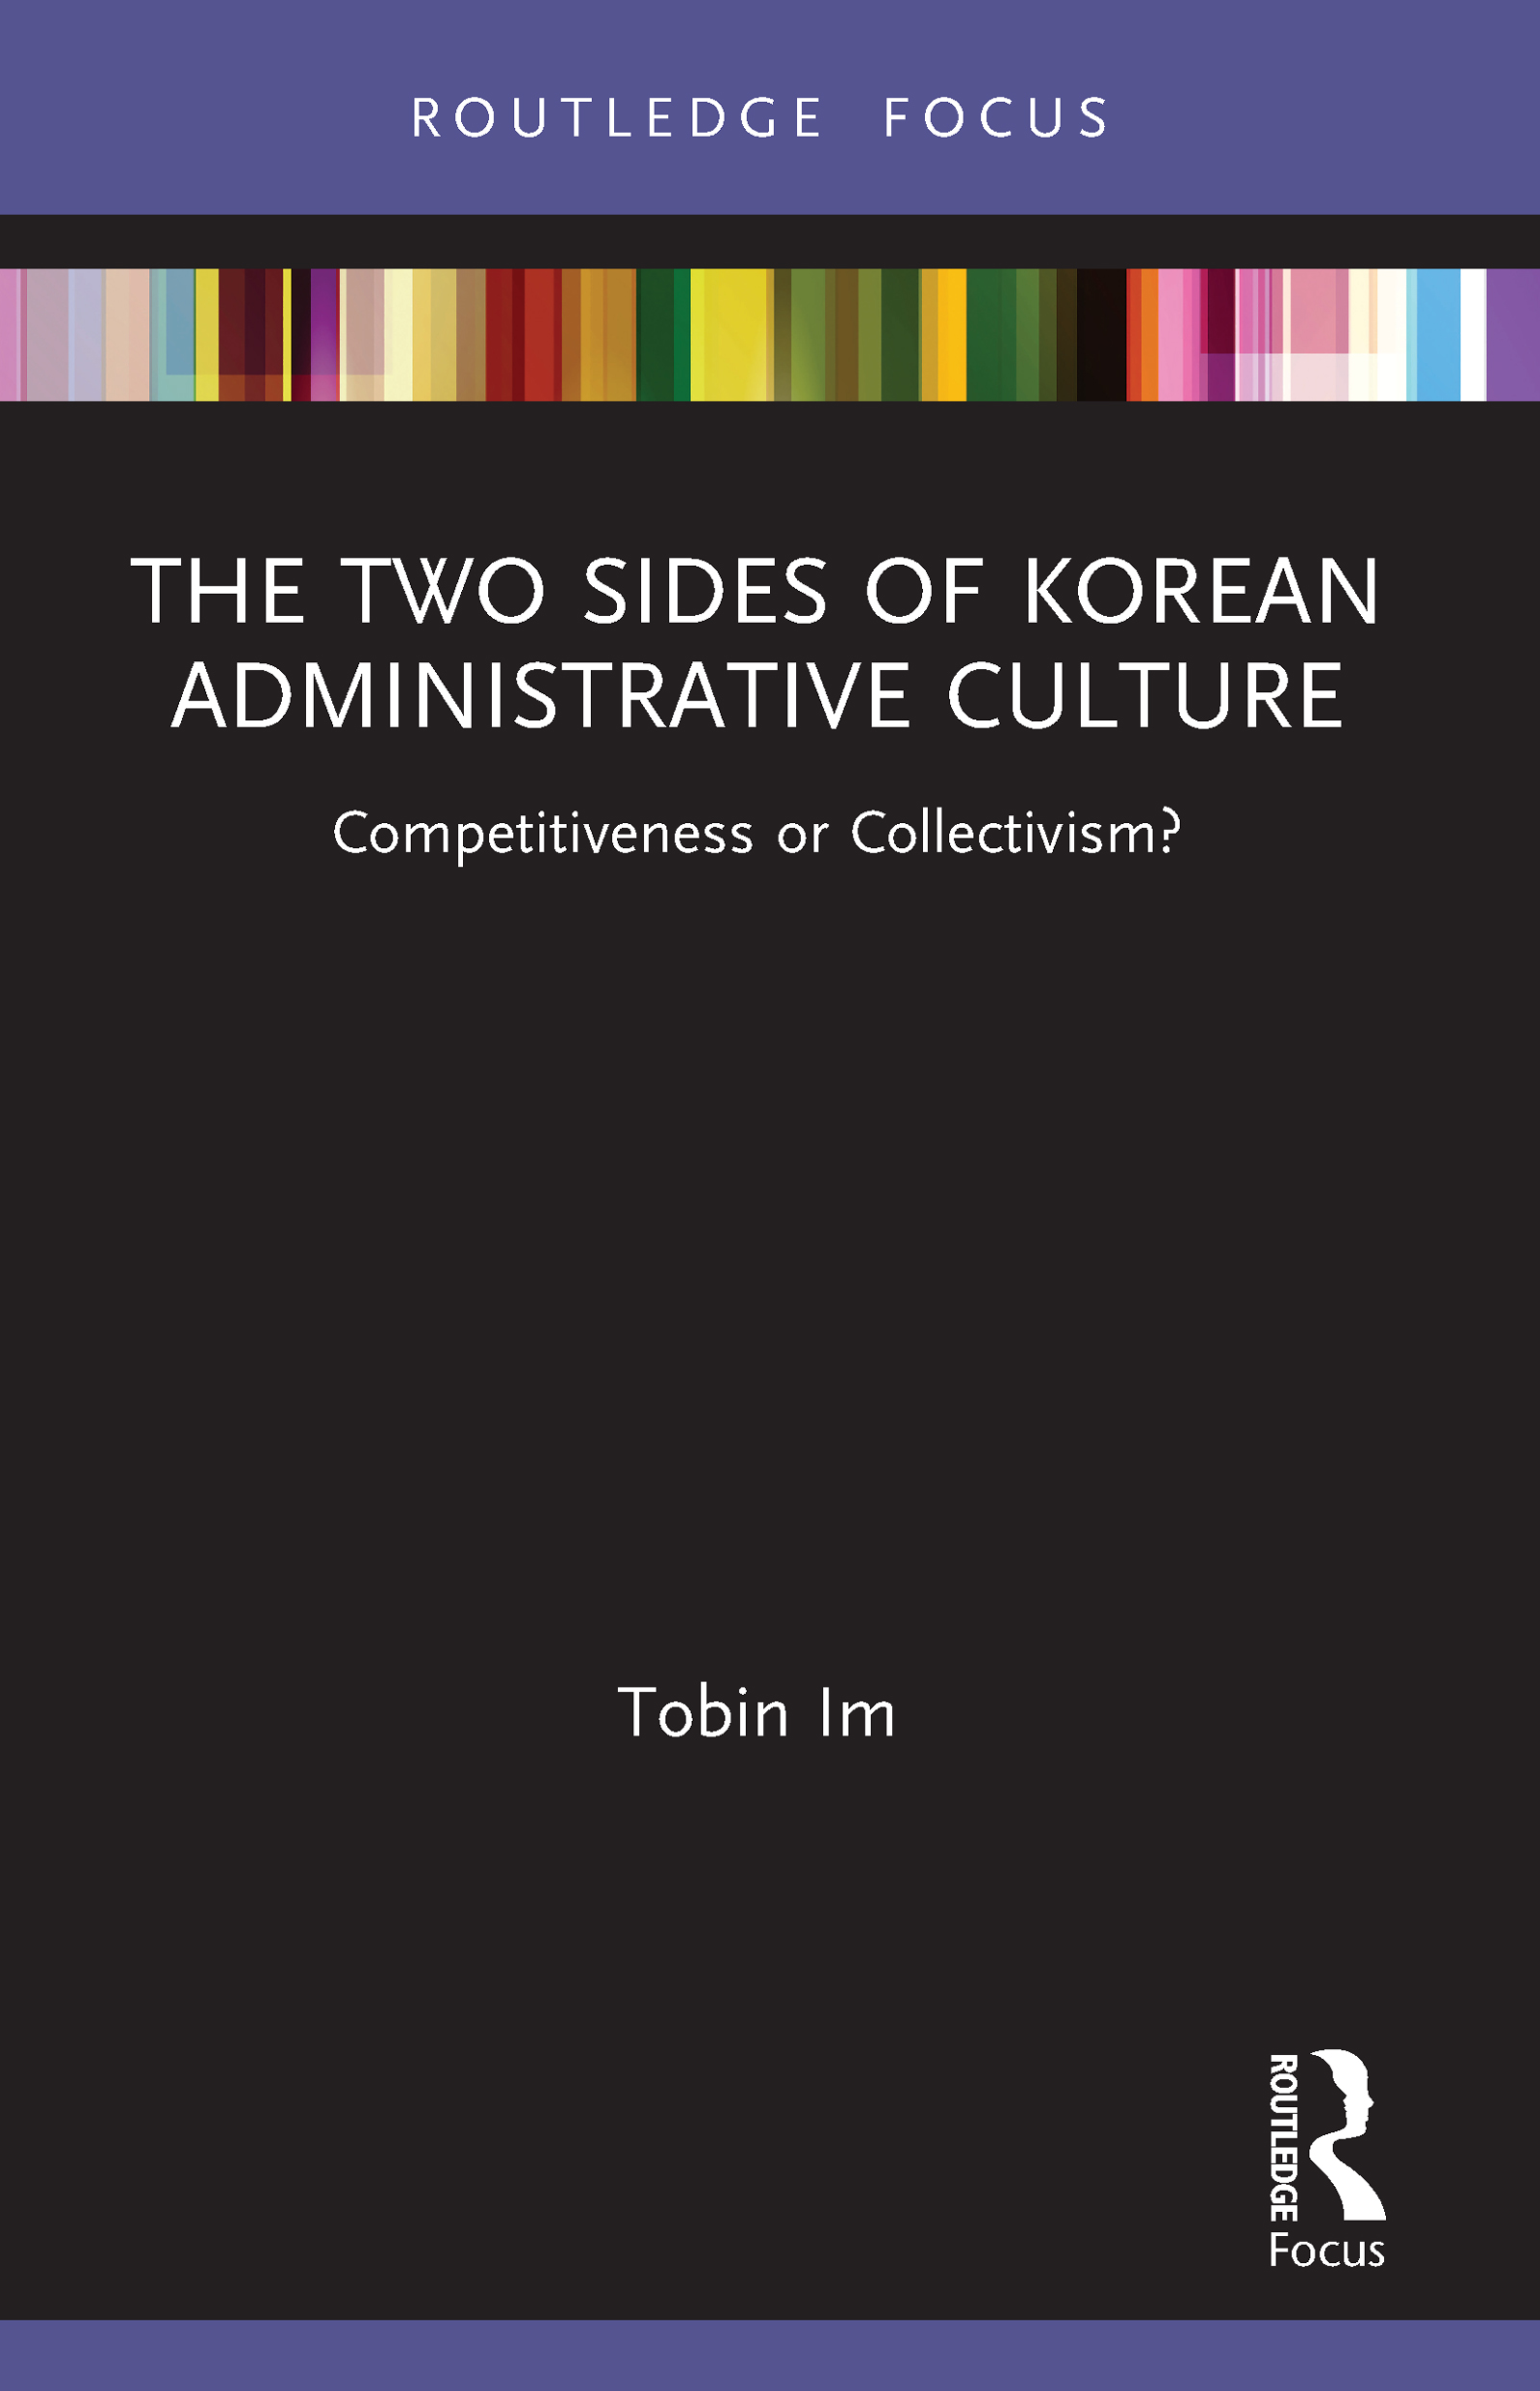 The Two Sides of Korean Administrative Culture